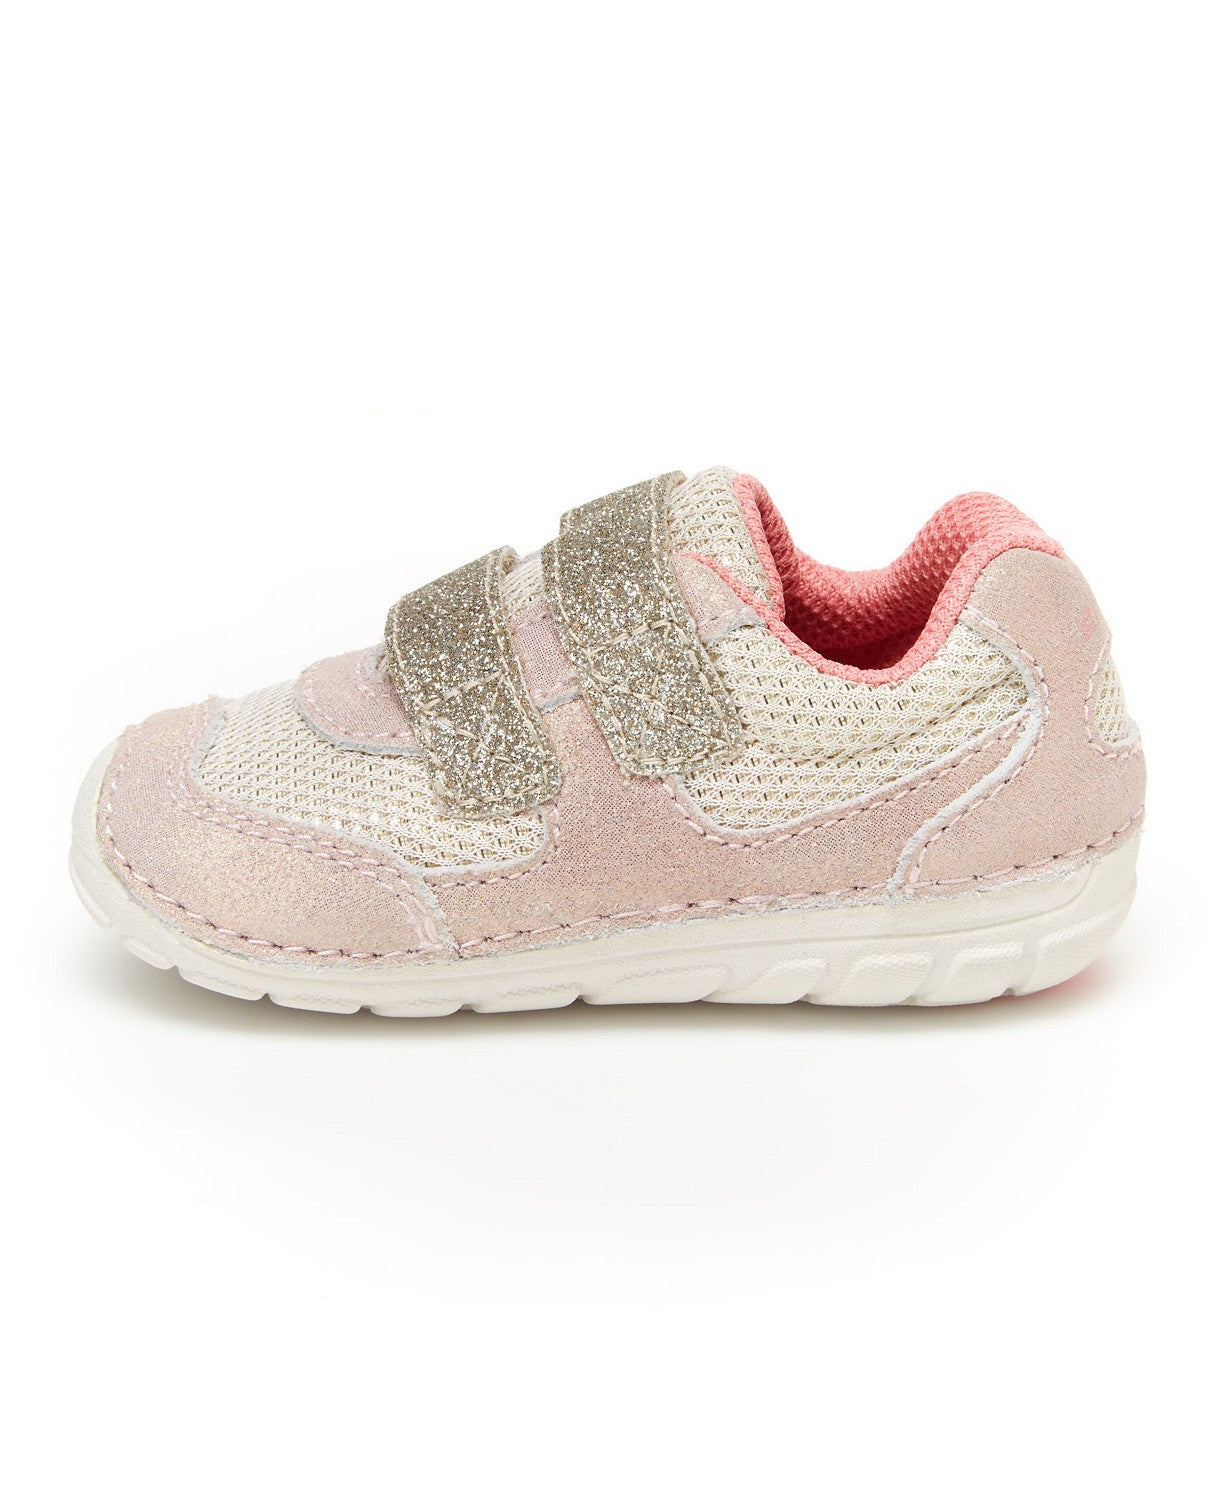 Stride Rite Soft Motion Mason Sneaker - Taupe/Coral